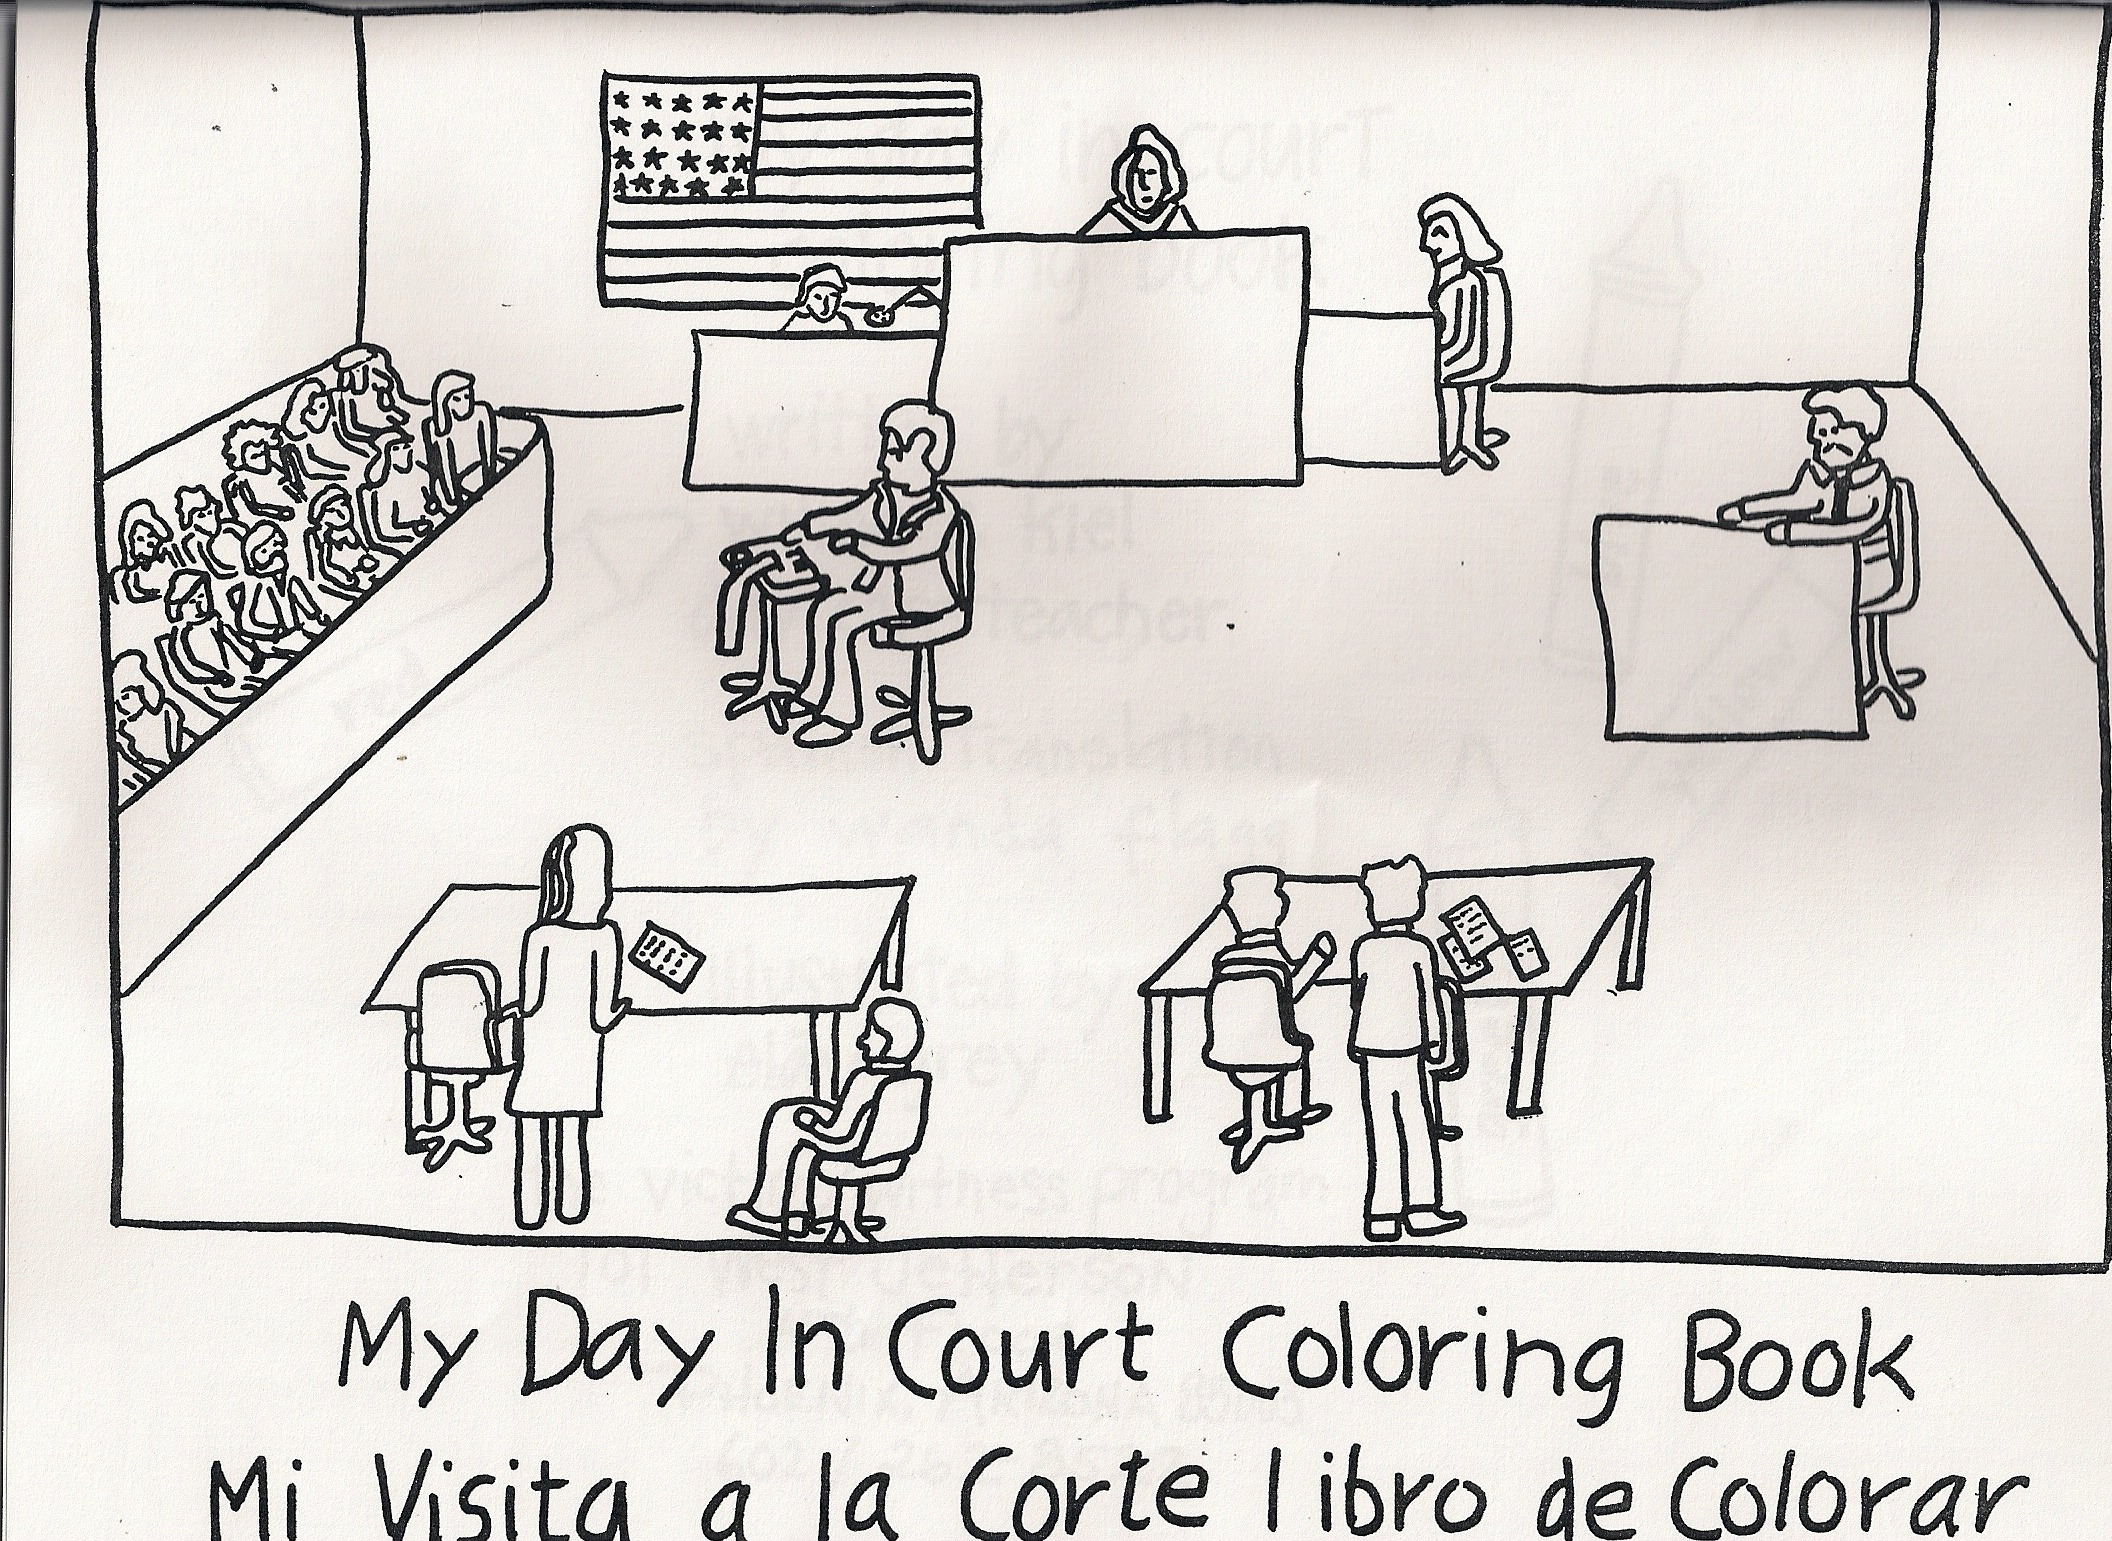 courthouse coloring pages - photo#1